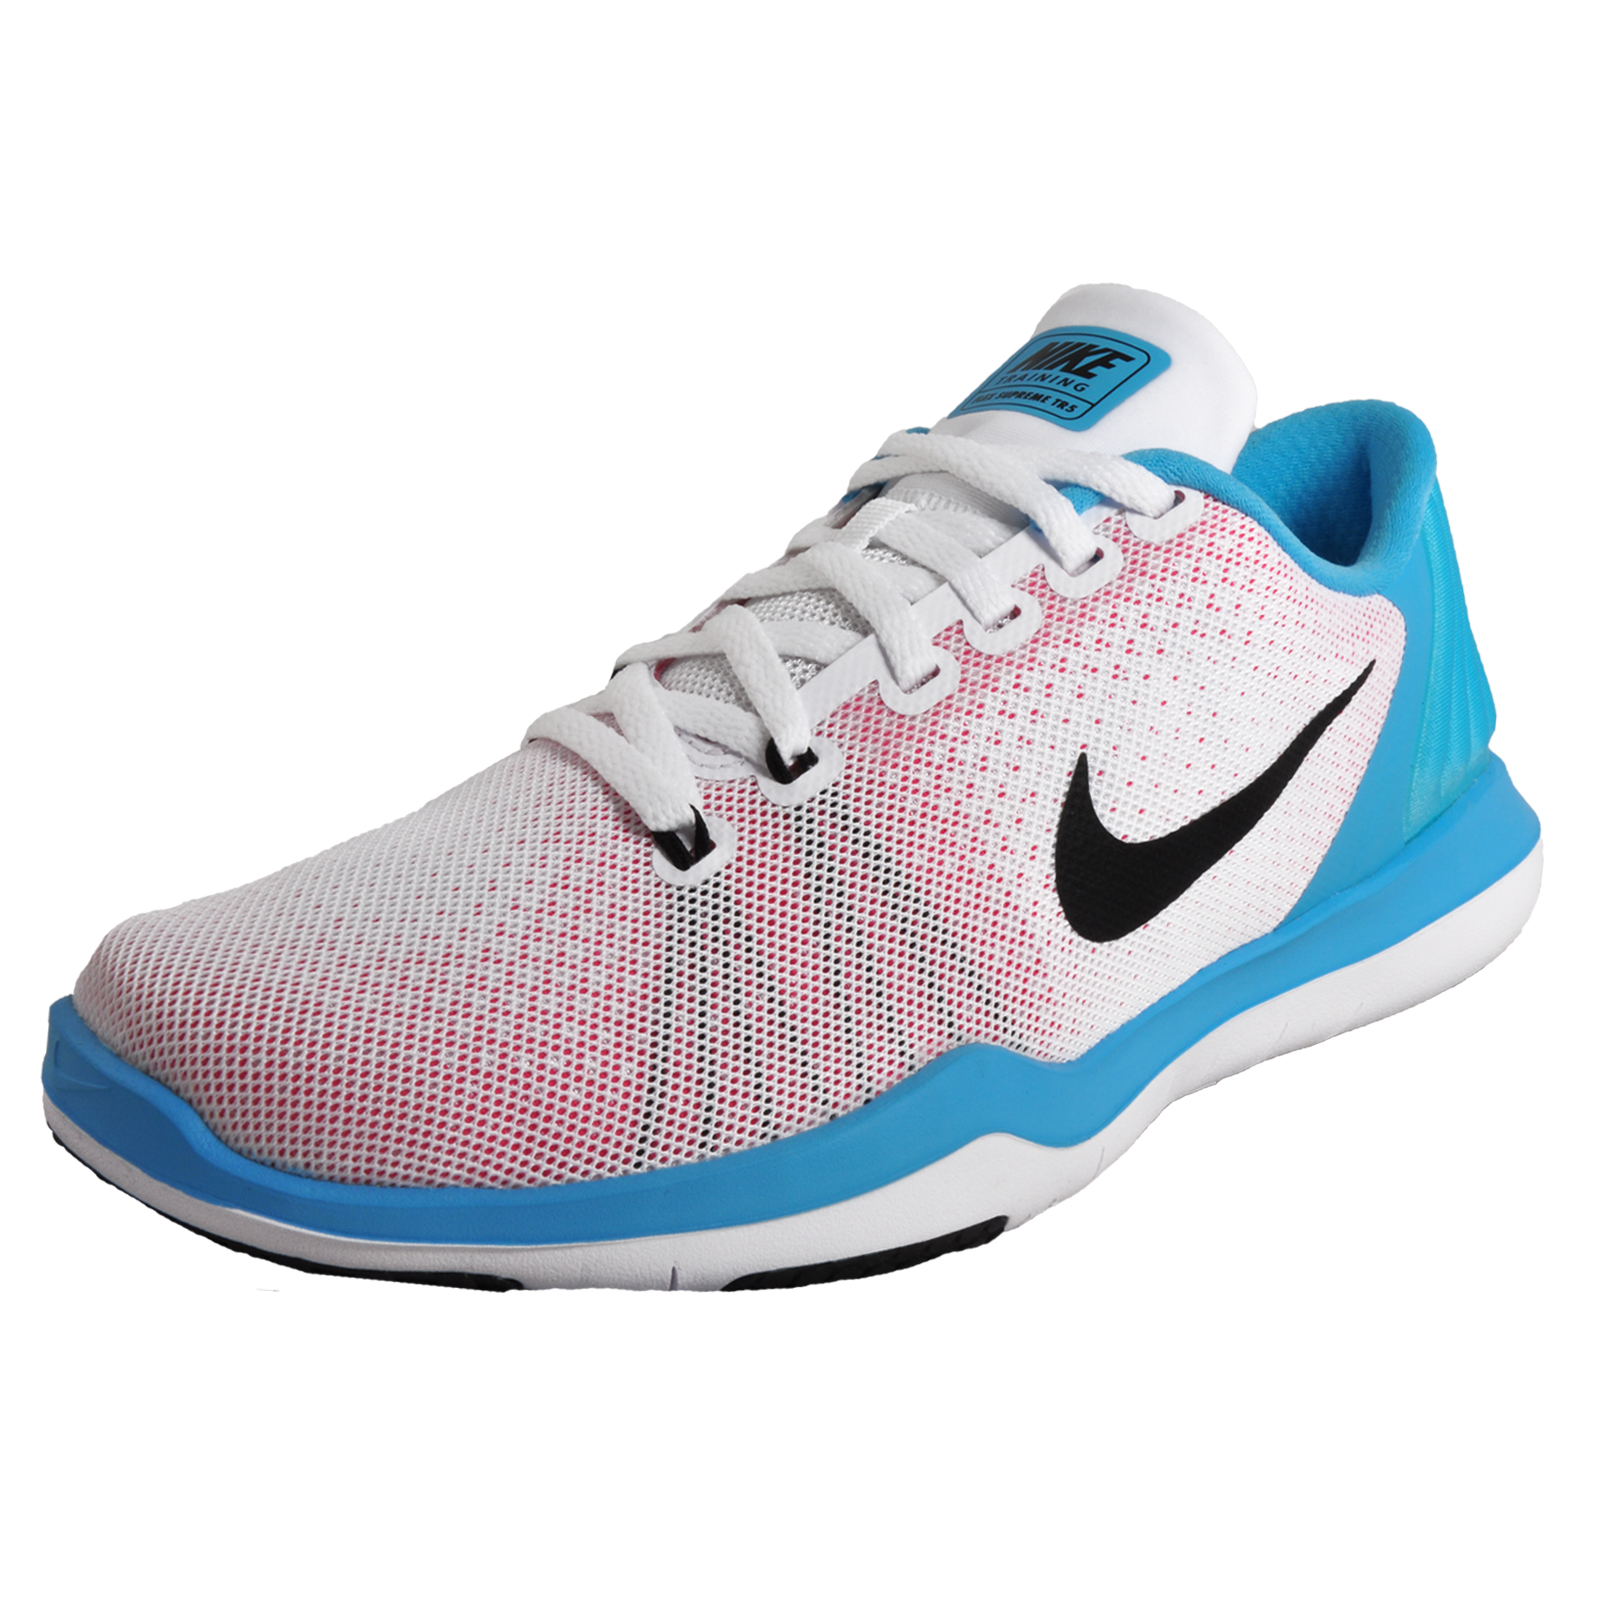 0ef3cbfa980d Details about Nike Flex Supreme TR 5 Womens Running Fitness Gym Trainers  White UK 5.5 Only